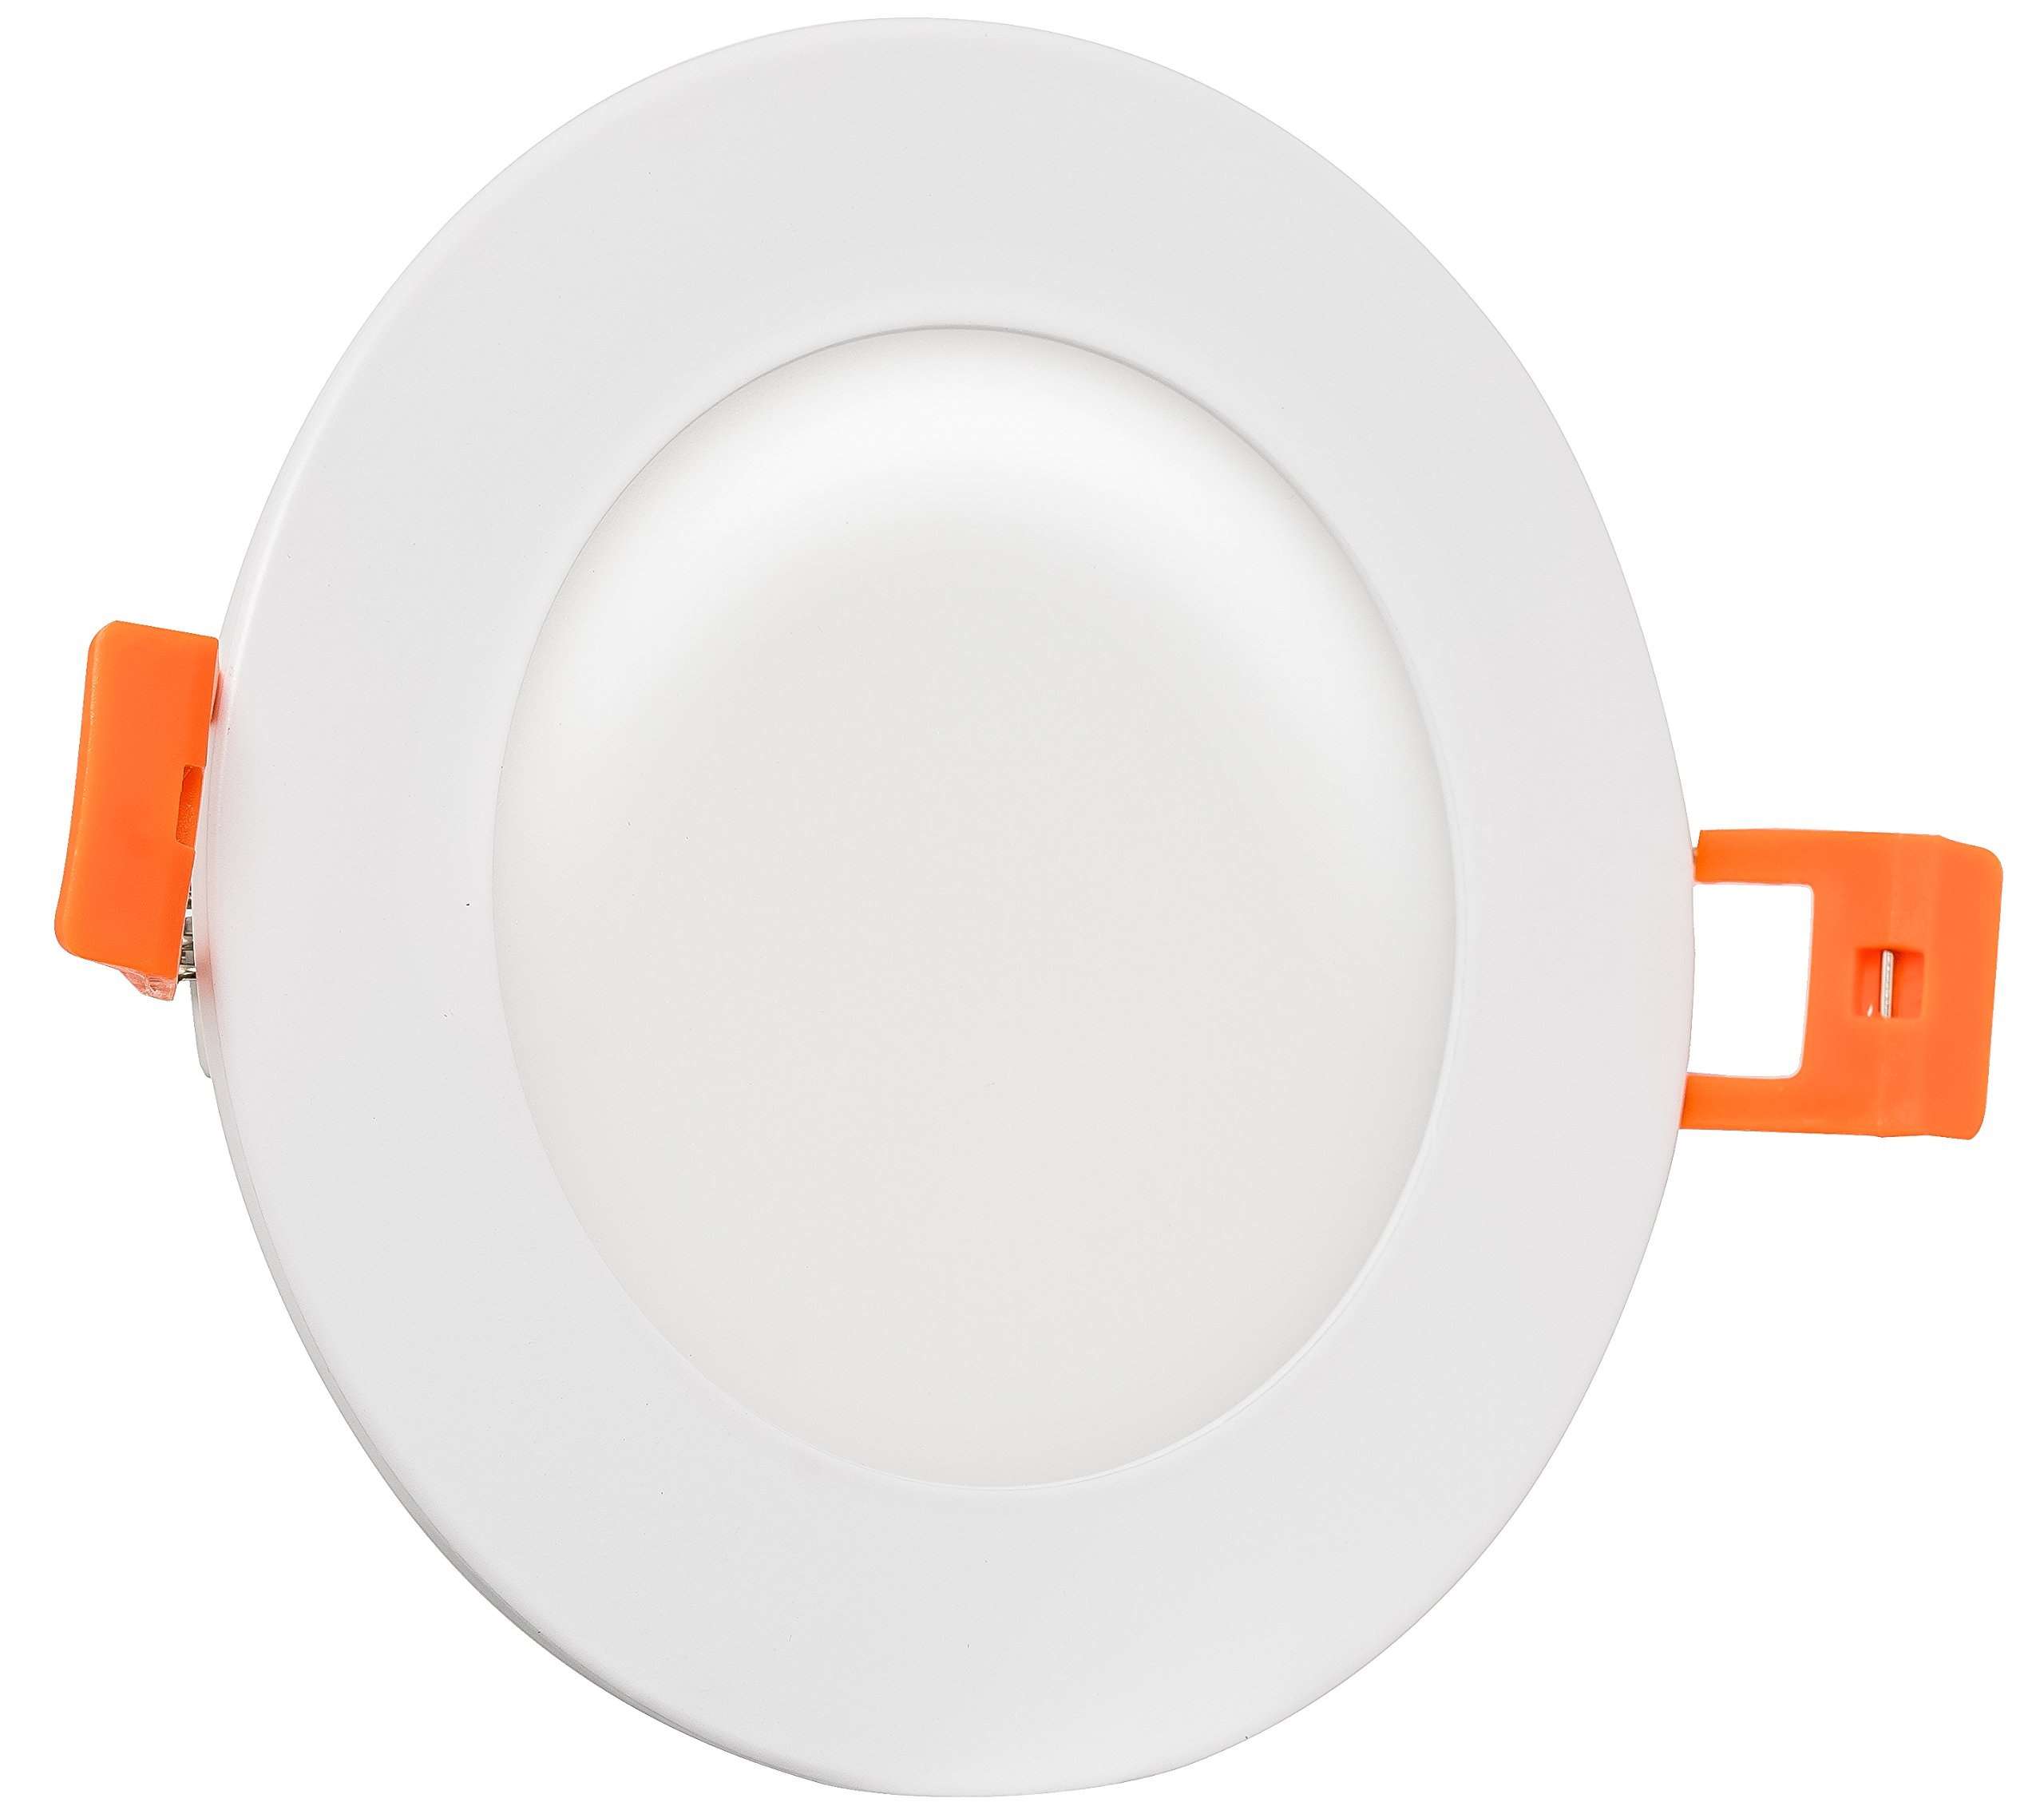 Westgate Lighting 9W 4'' inch Ultra Thin Slim LED Recessed Light - Dimmable Retrofit Downlight Smooth Trim - Junction Box Included - No Housing Required - Ceiling Lights - 120V ETL (3000K Soft White)